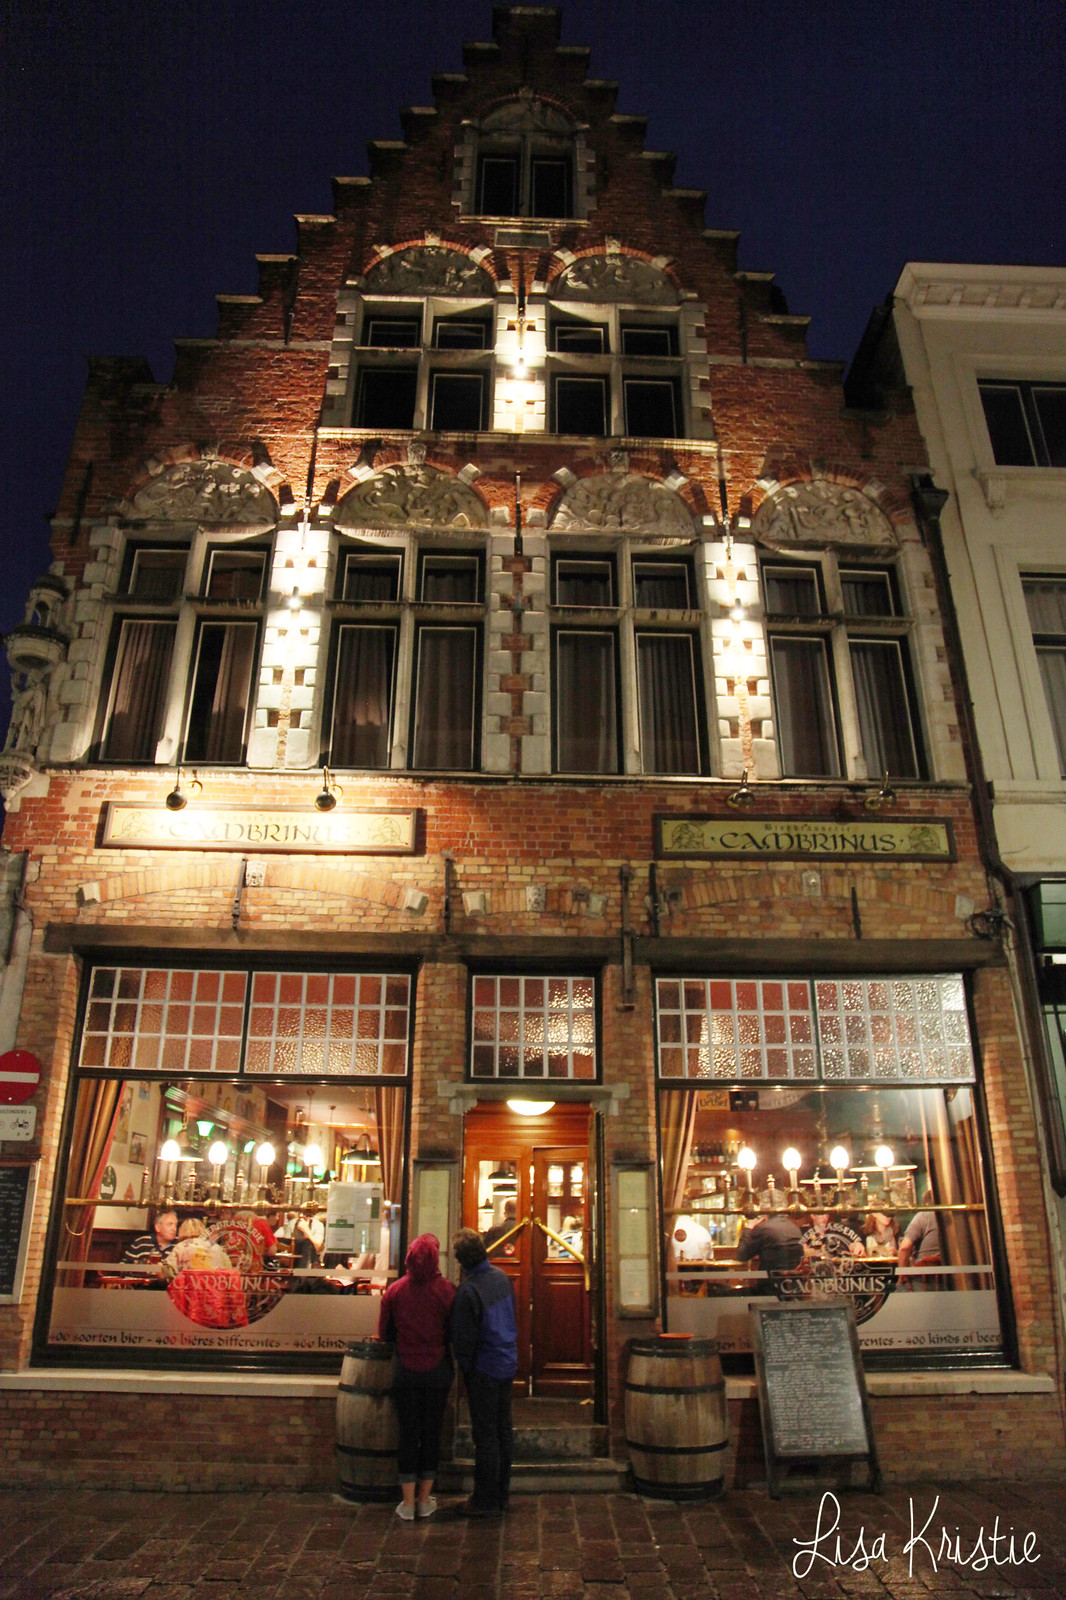 cambrinus brasserie brewery restaurant brugge belgium bruges facade building by night rain rainy weather beautiful lights summer medieval architecture